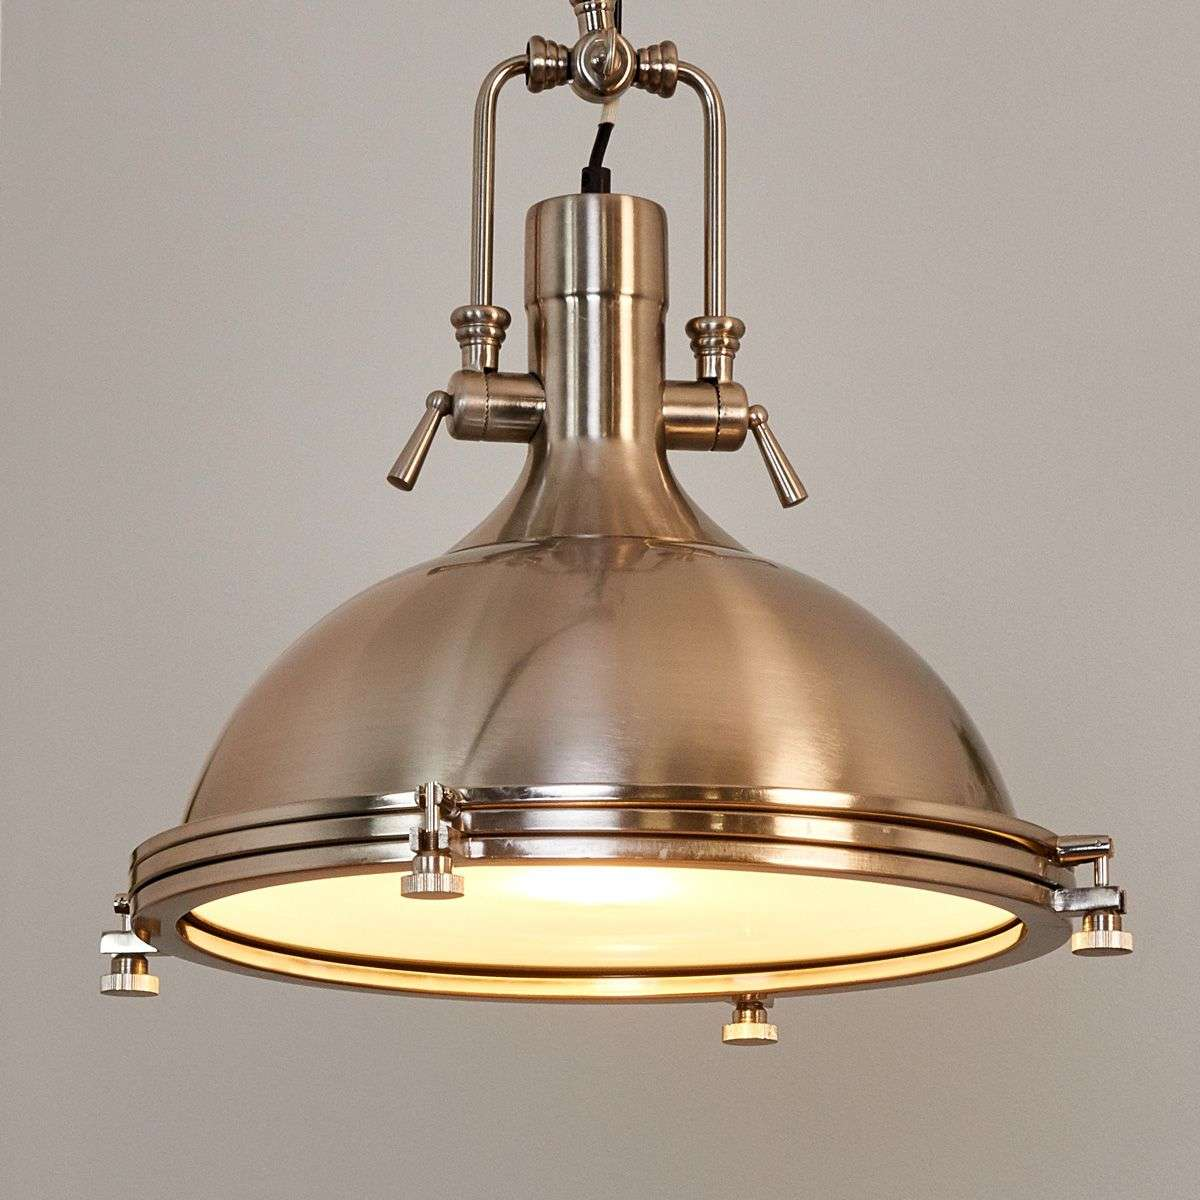 best ebay inspiring room dining shelving kitchen pipes ceiling style industrial on for lights pinterest fans looking hugger living apartment lighting images